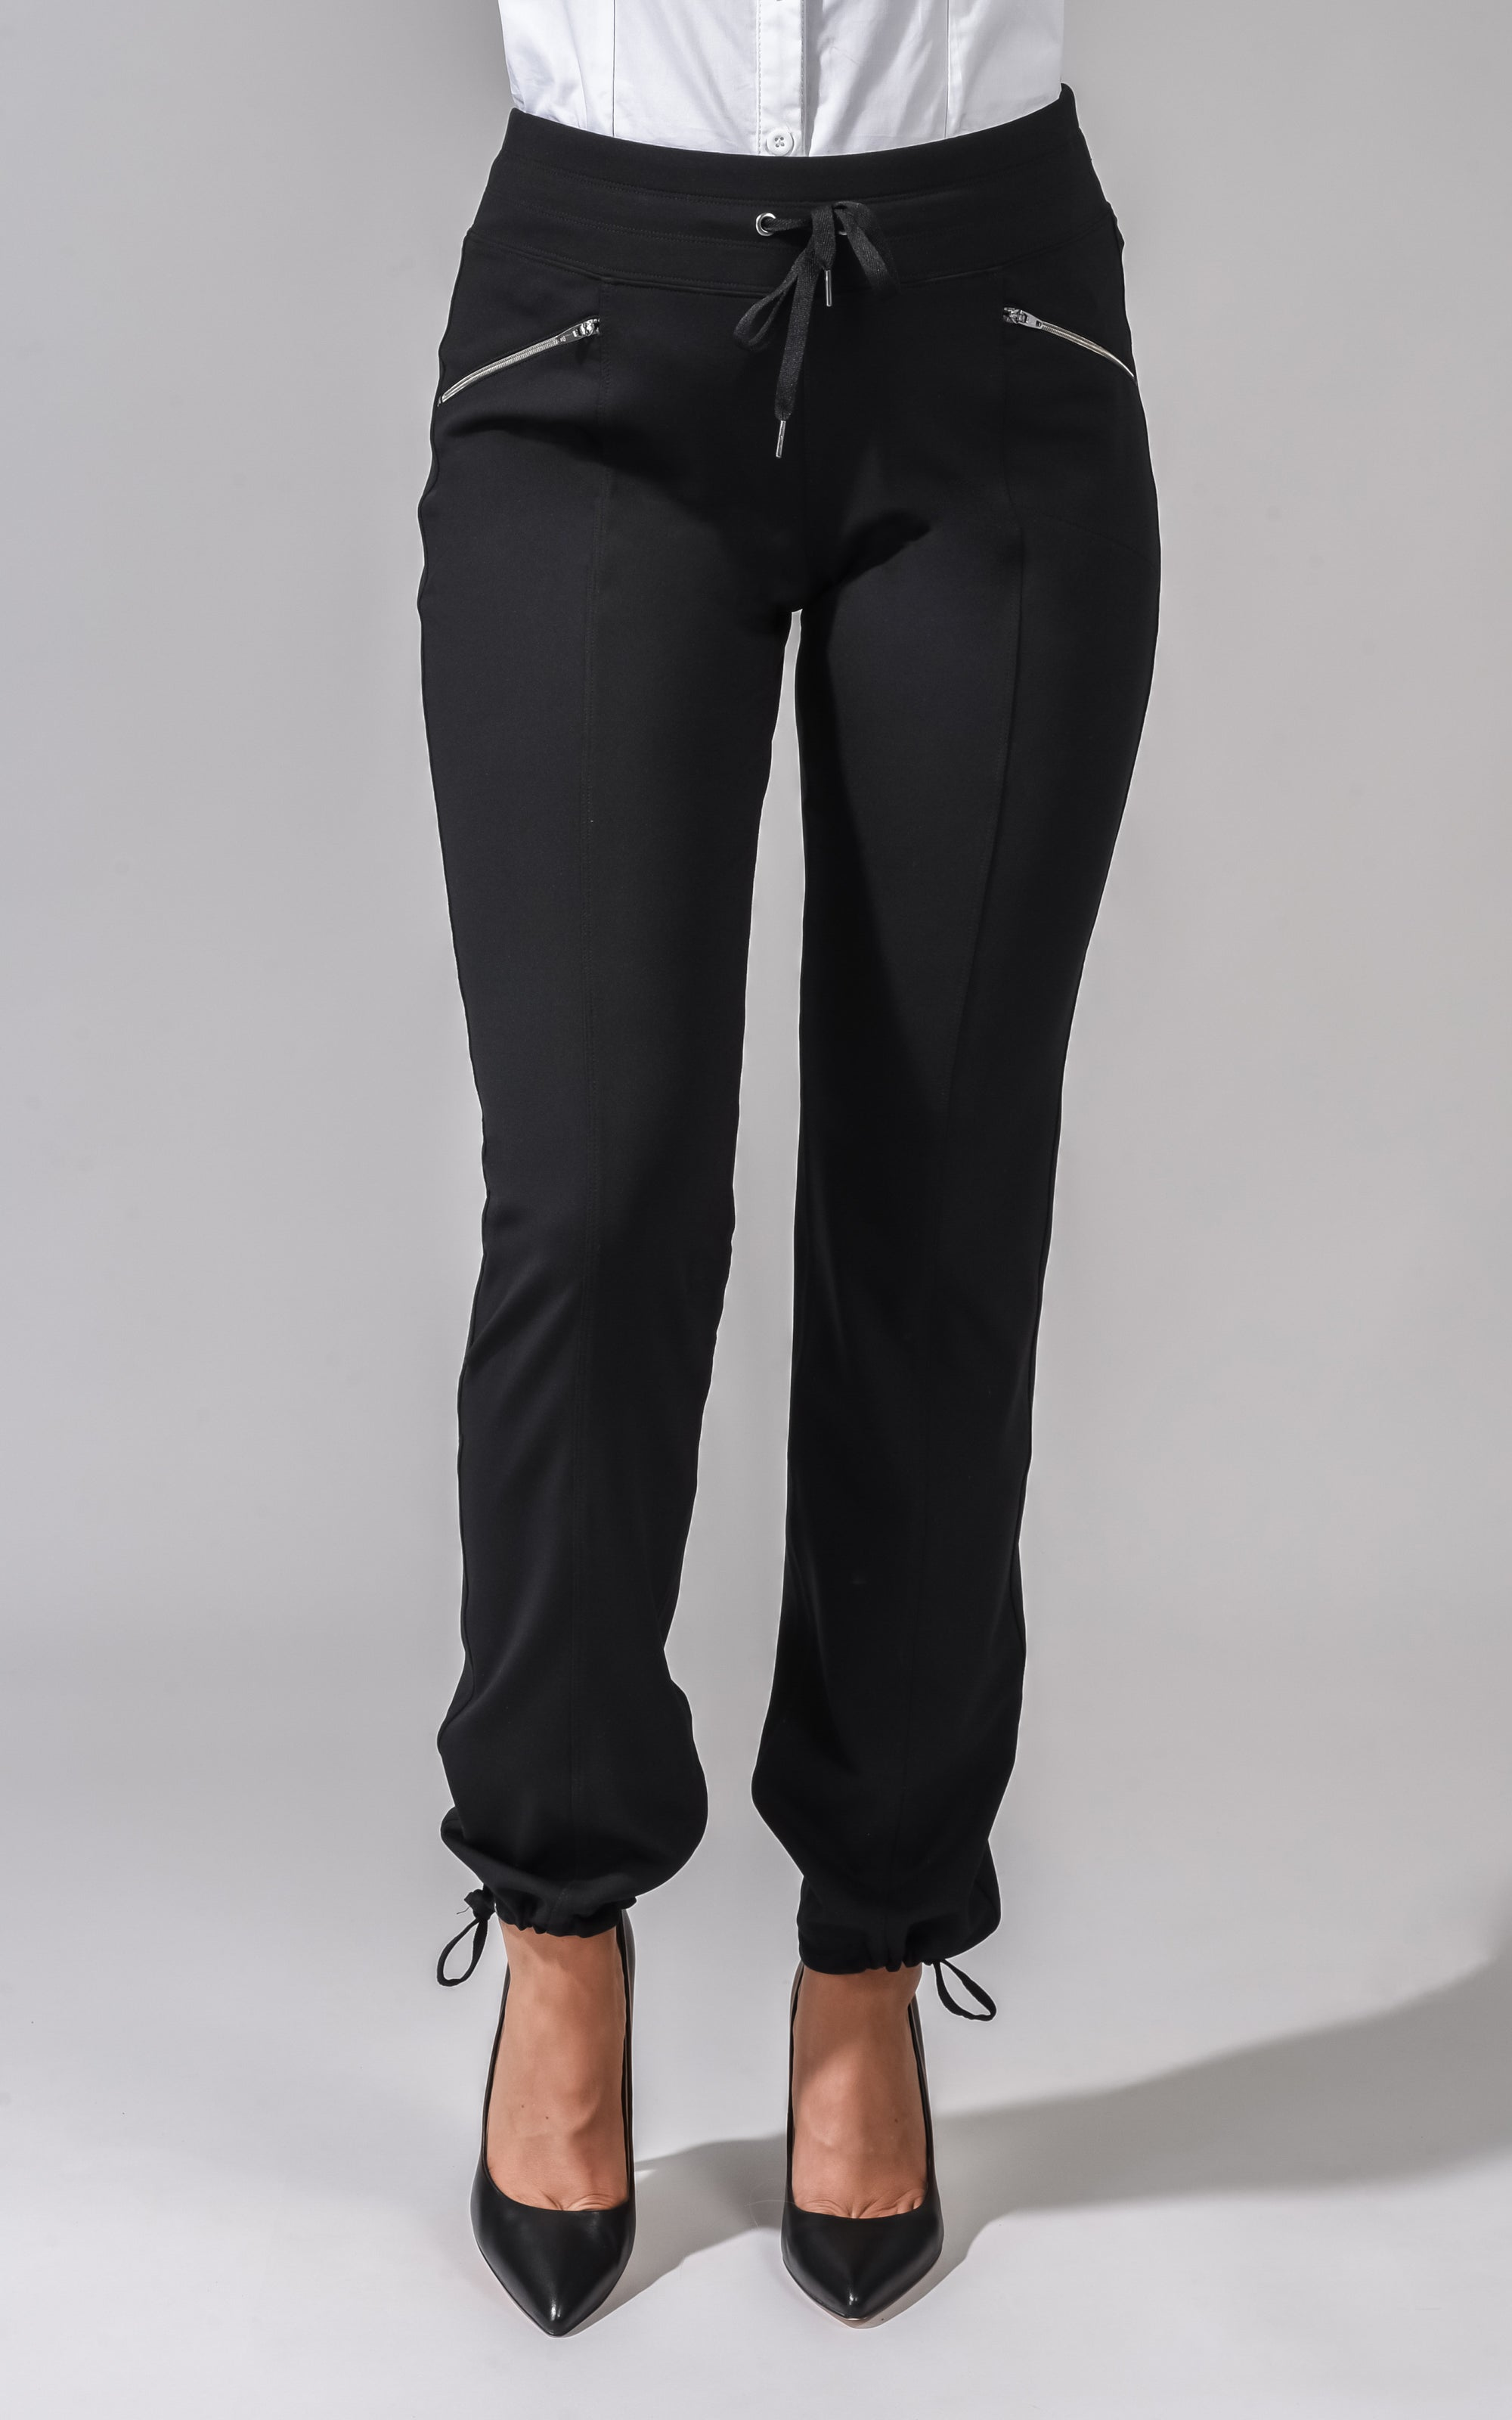 363a6c9db3 The Work-It Pant - Womens Pants - 90 Degree by Reflex